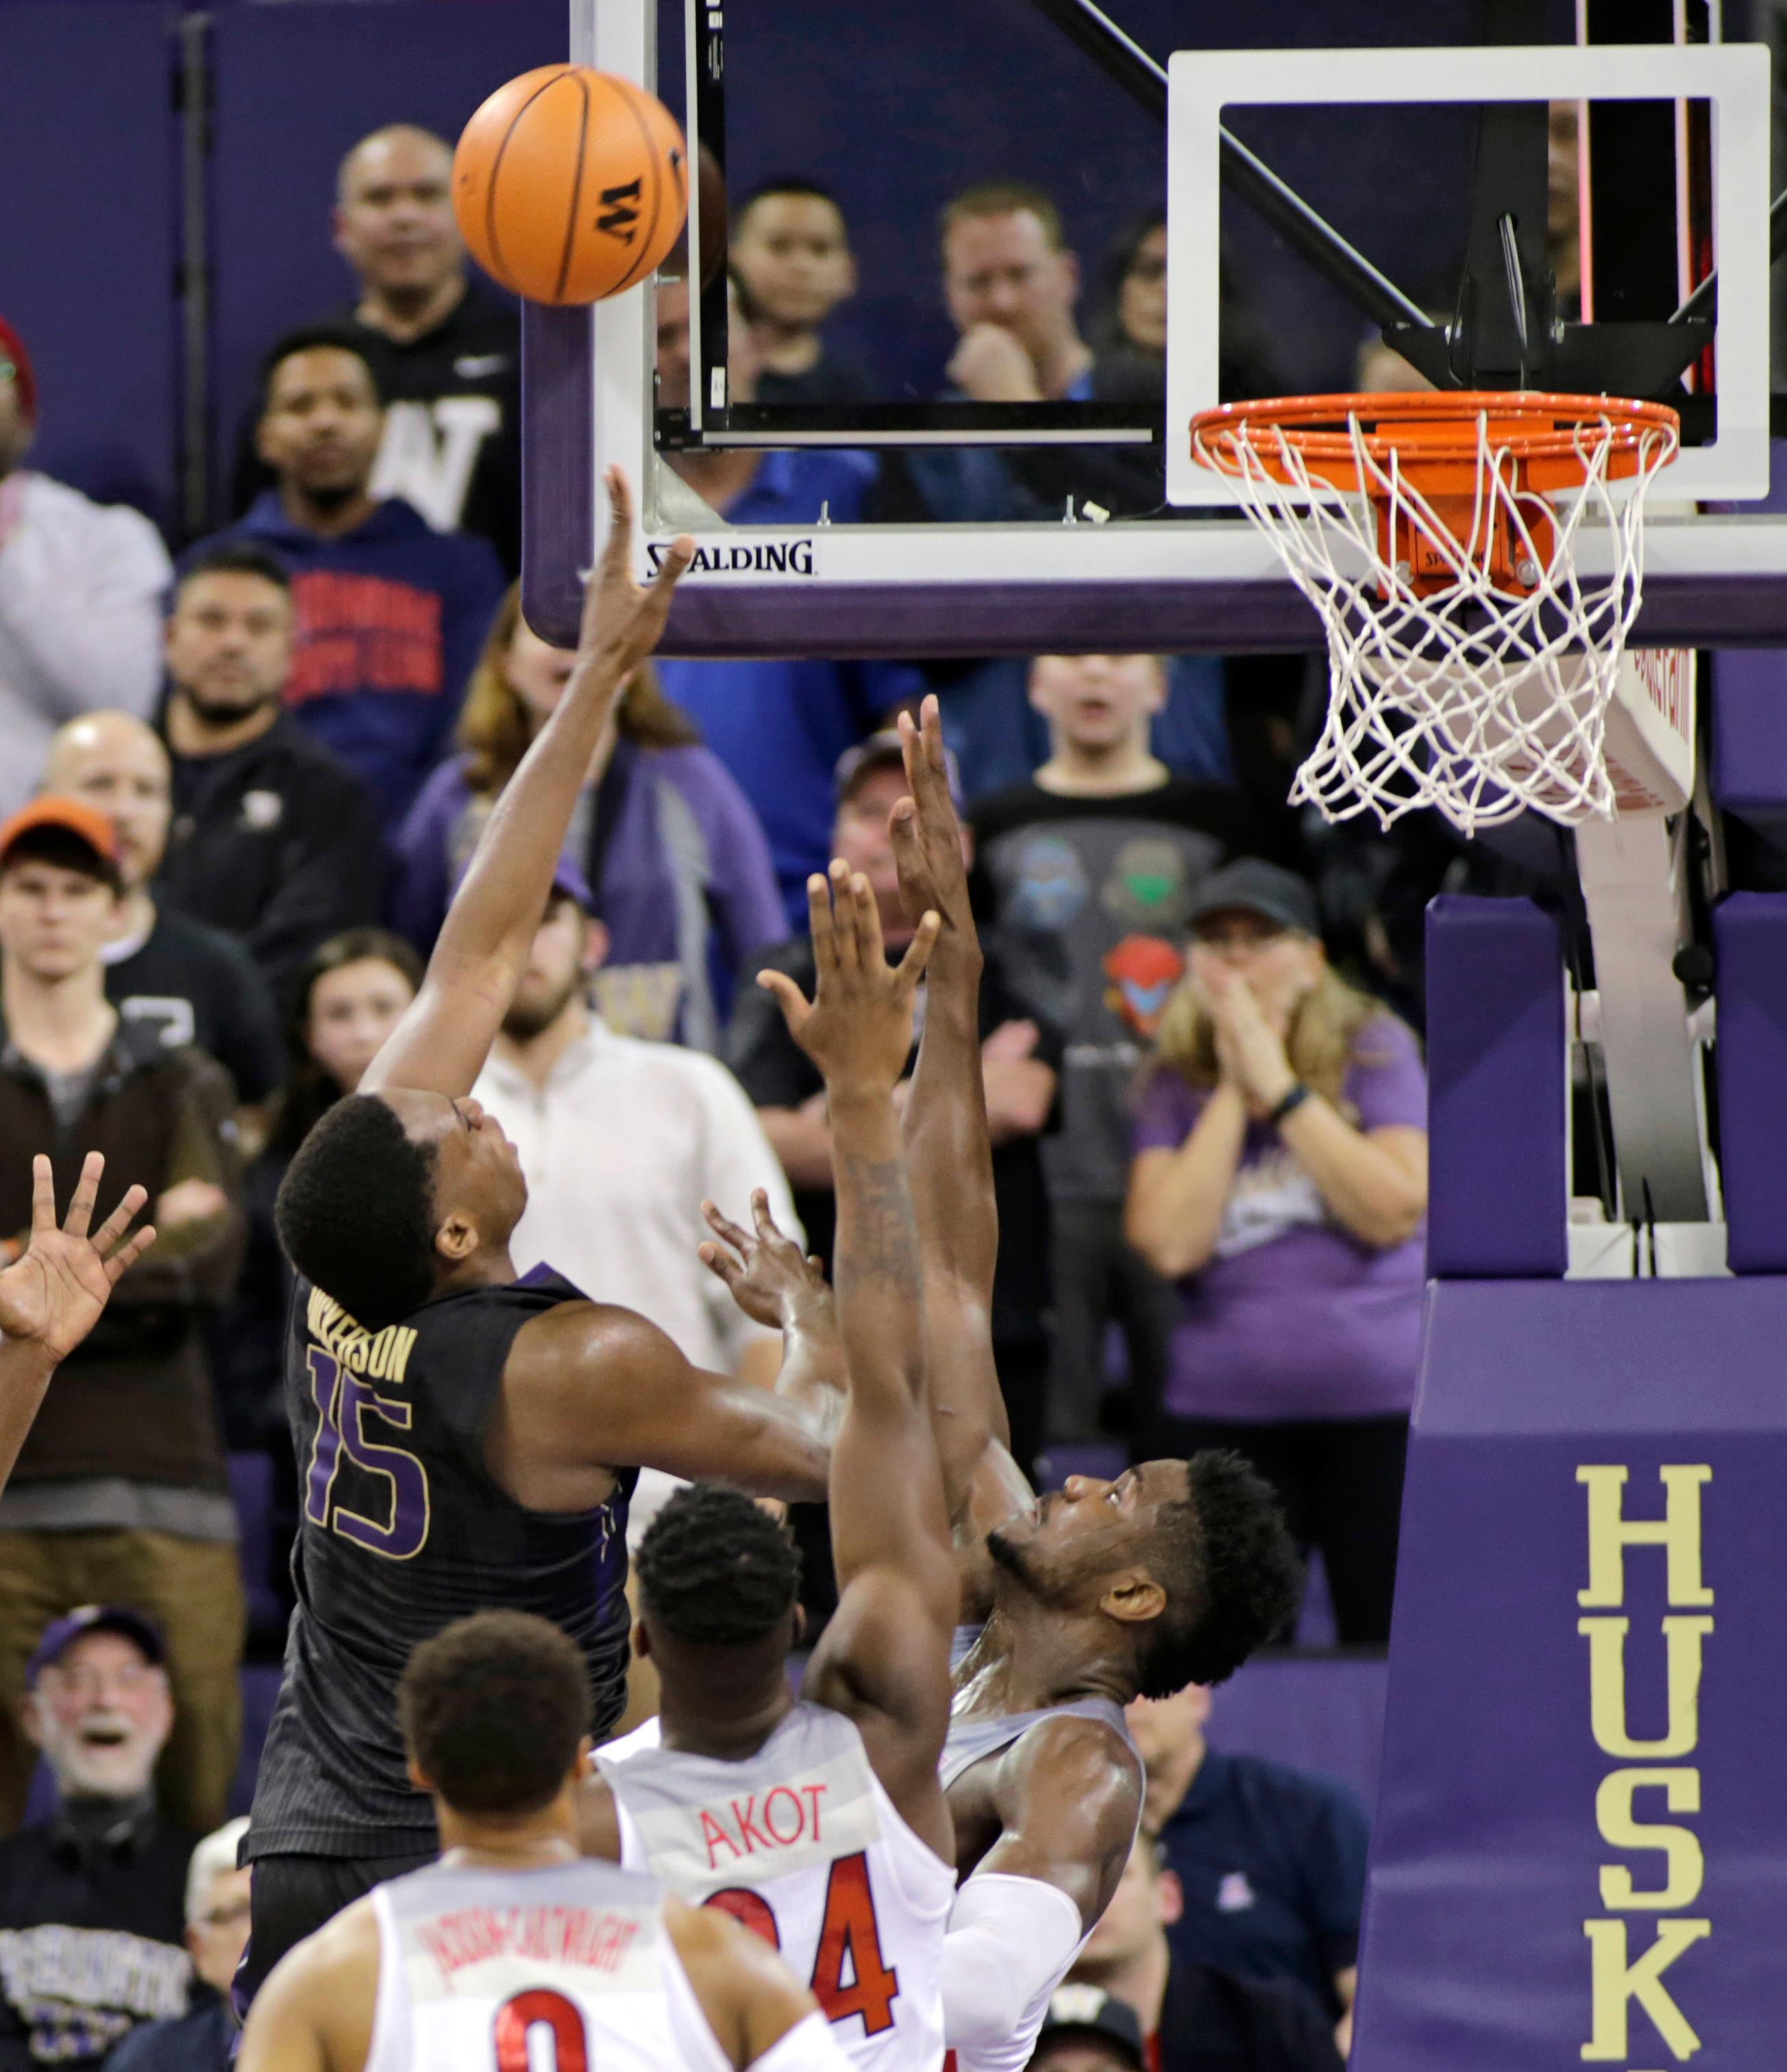 Washington's Noah Dickerson shoots over Arizona's Deandre Ayton, right, and Emmanuel Akot during the second half of an NCAA college basketball game Saturday, Feb. 3, 2018, in Seattle. Washington won 78-75 with Dickerson leading Washington with 25 points. (AP Photo/John Froschauer)